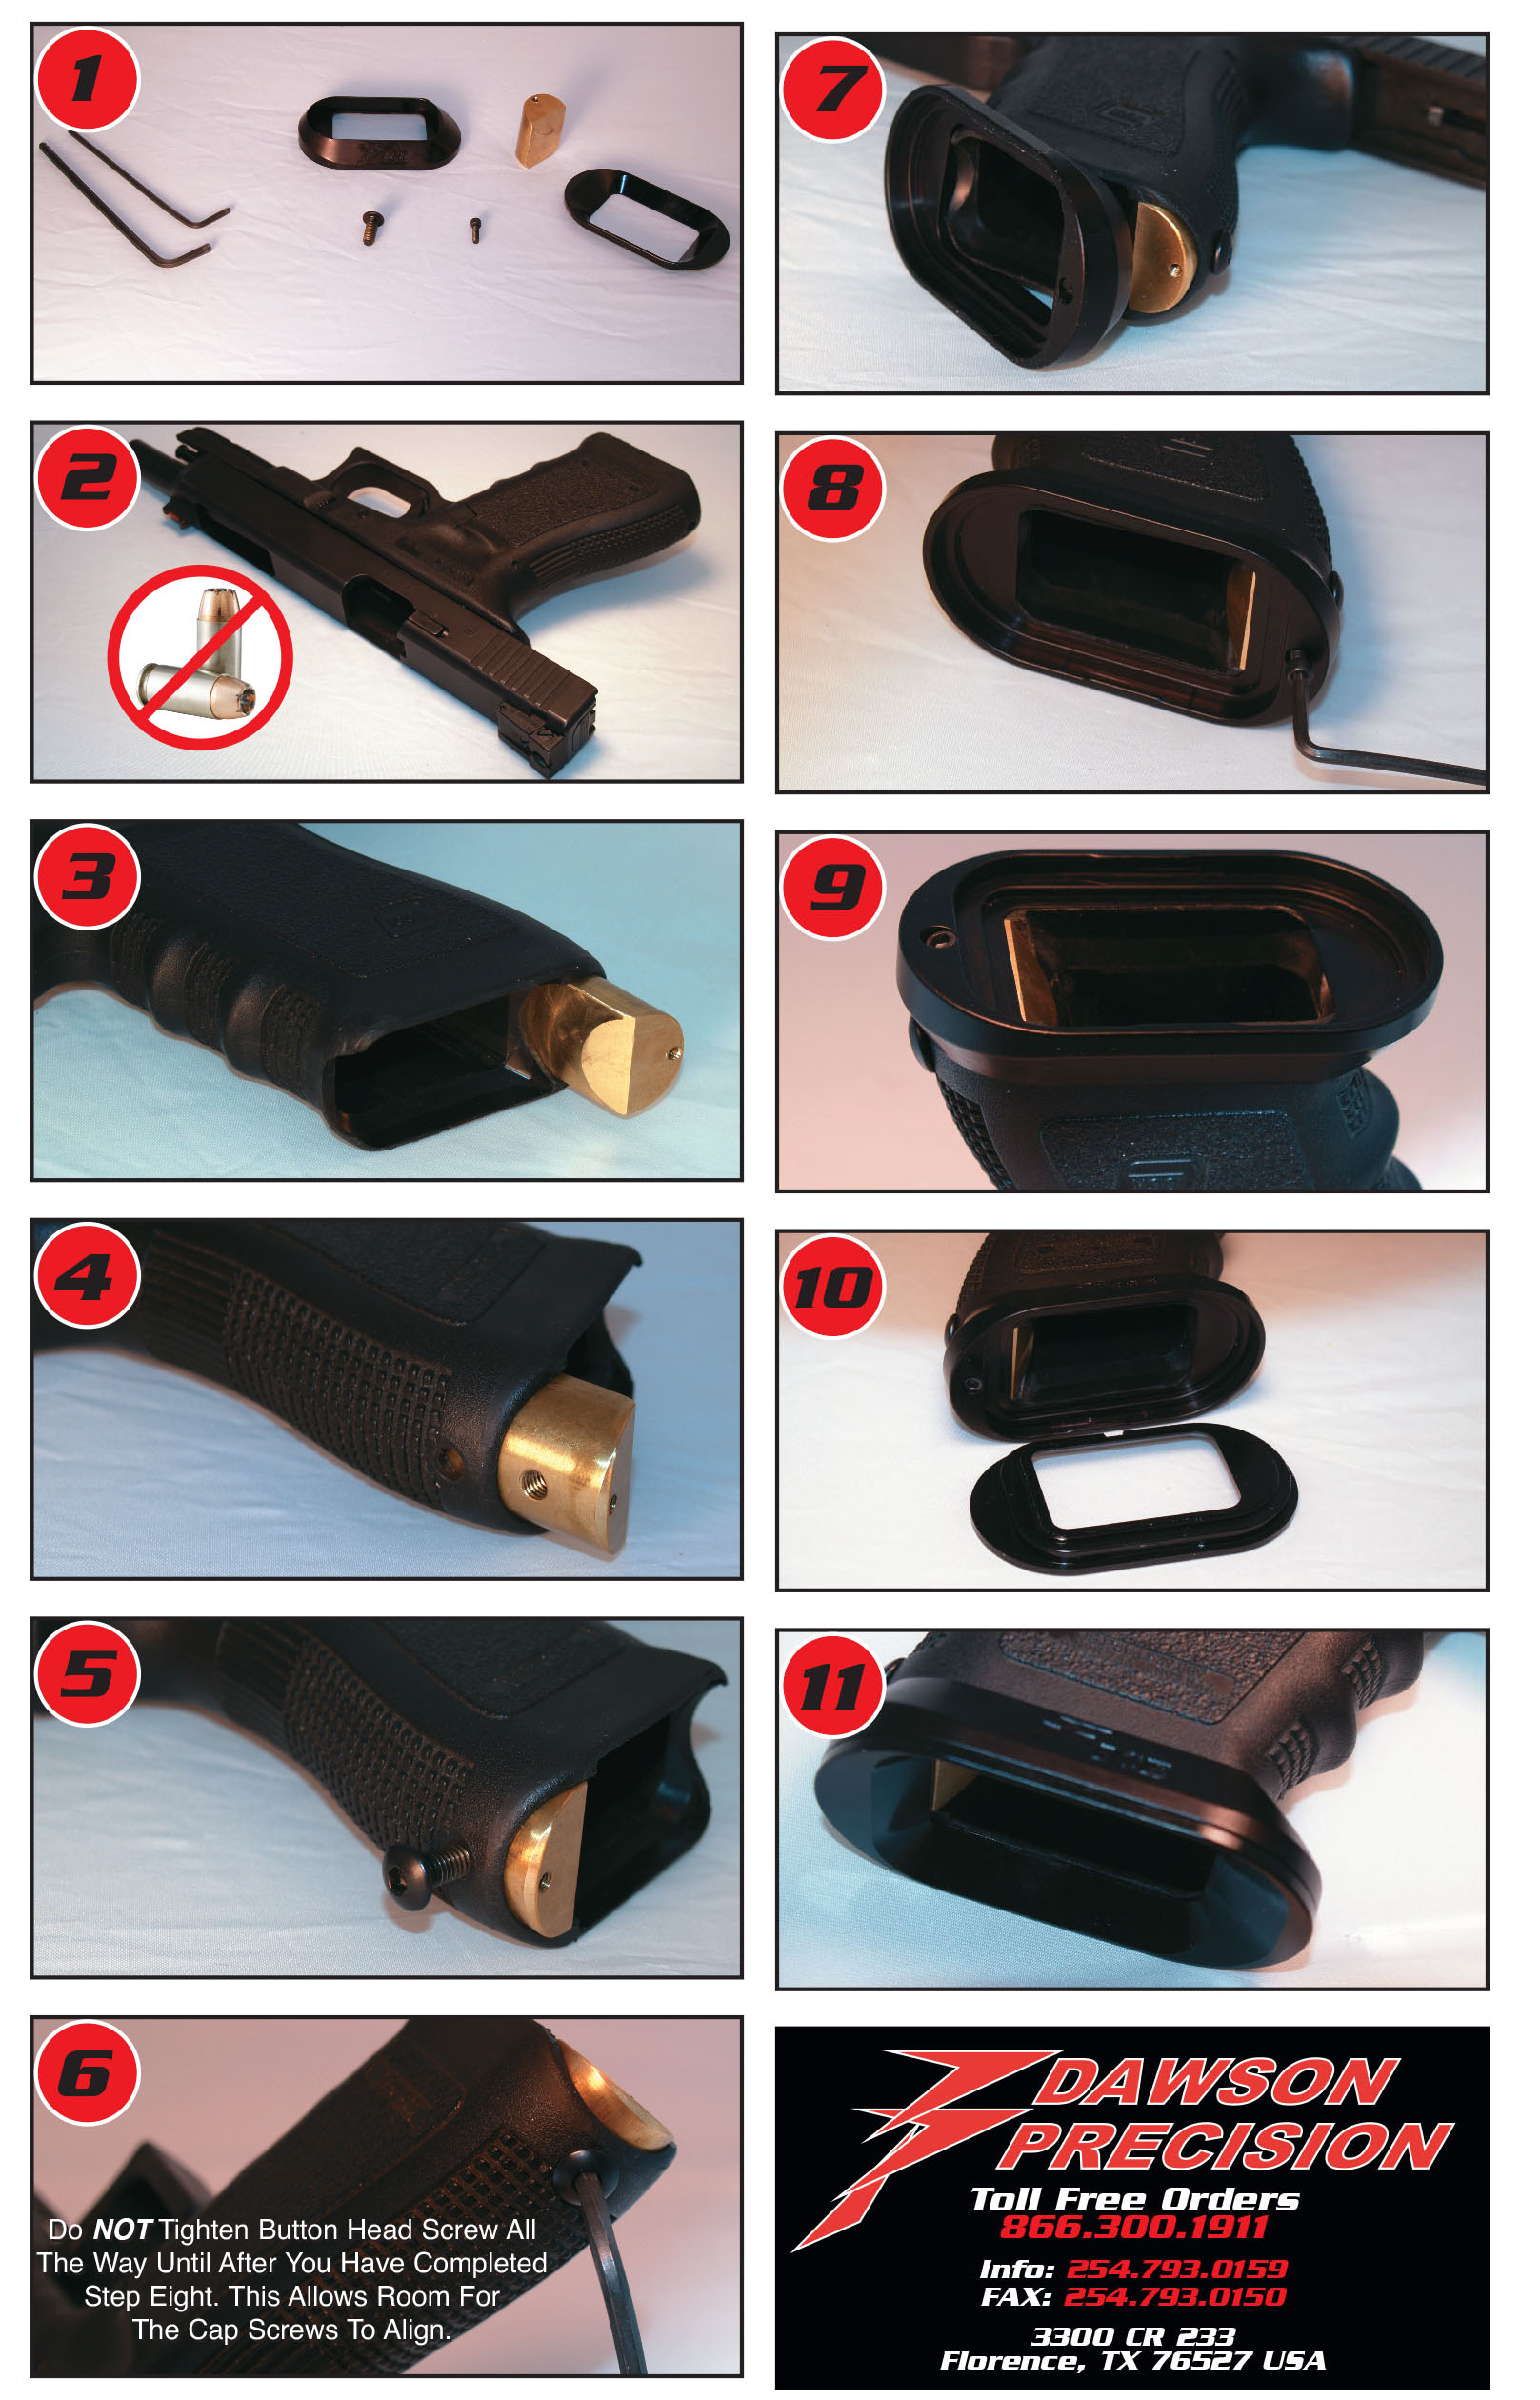 Instructions For Dp Parts Glock Schematic Diagram Together With 22 Magazine Maintenance